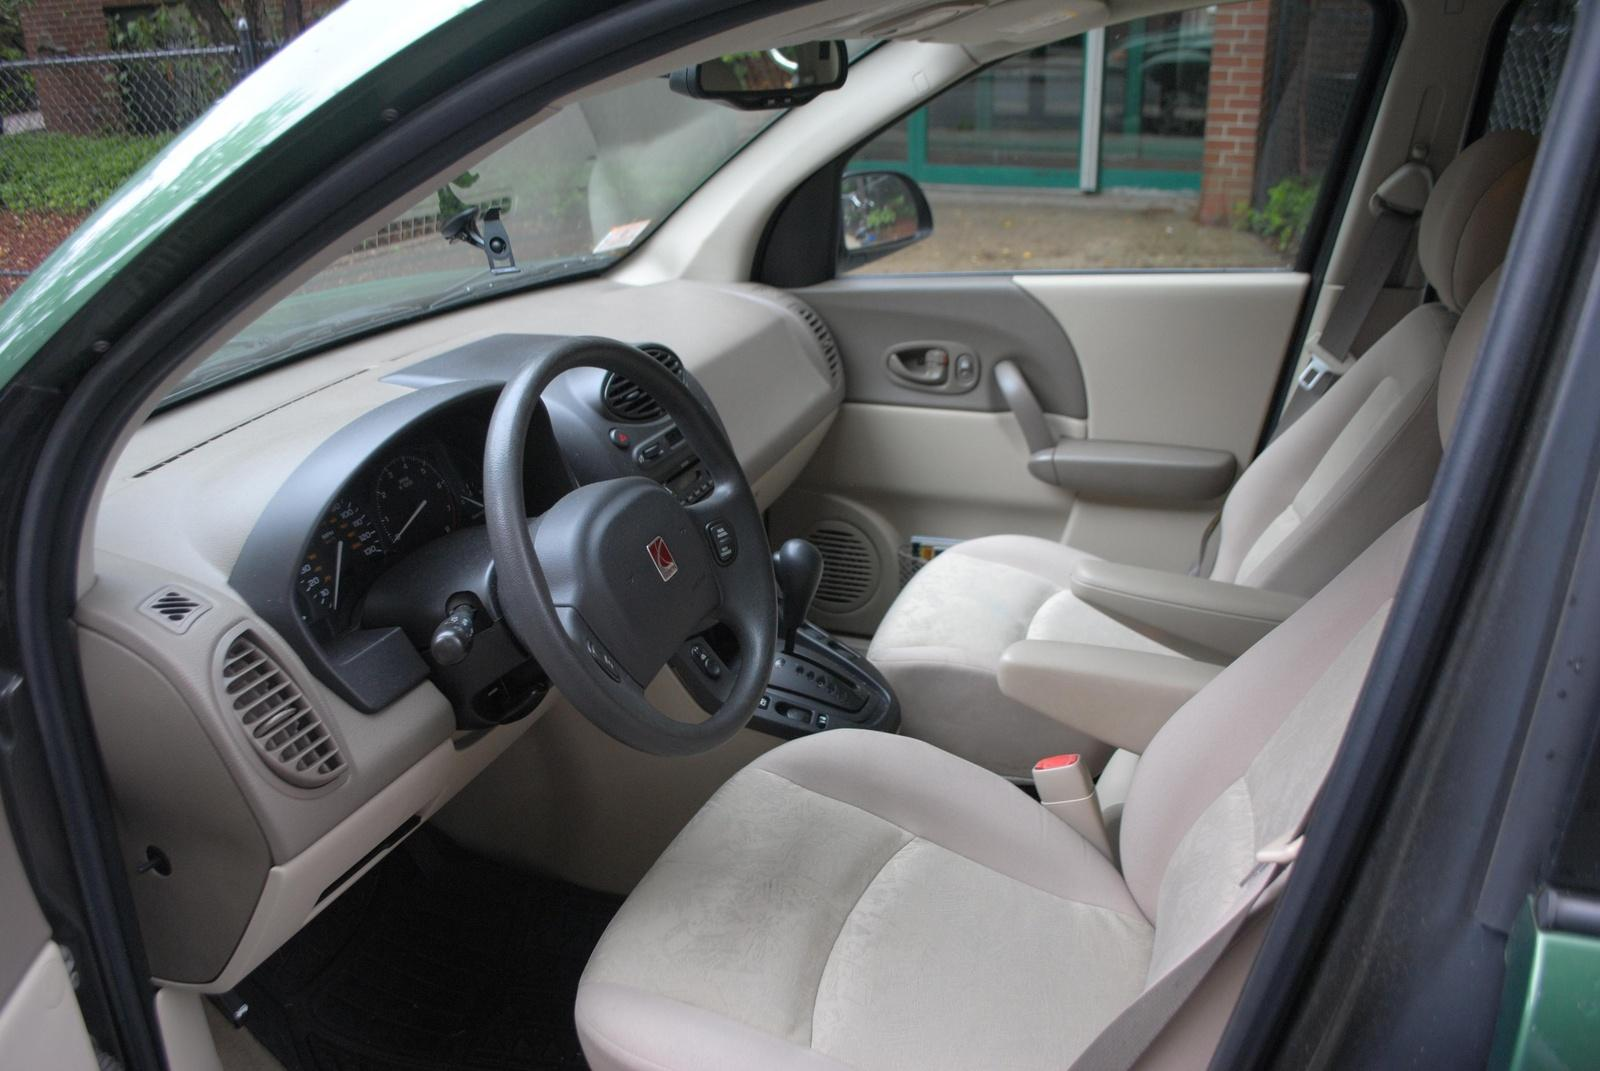 2002 saturn vue white gallery hd cars wallpaper 2003 saturn vue interior gallery hd cars wallpaper 2002 saturn vue white gallery hd cars wallpaper vanachro Images